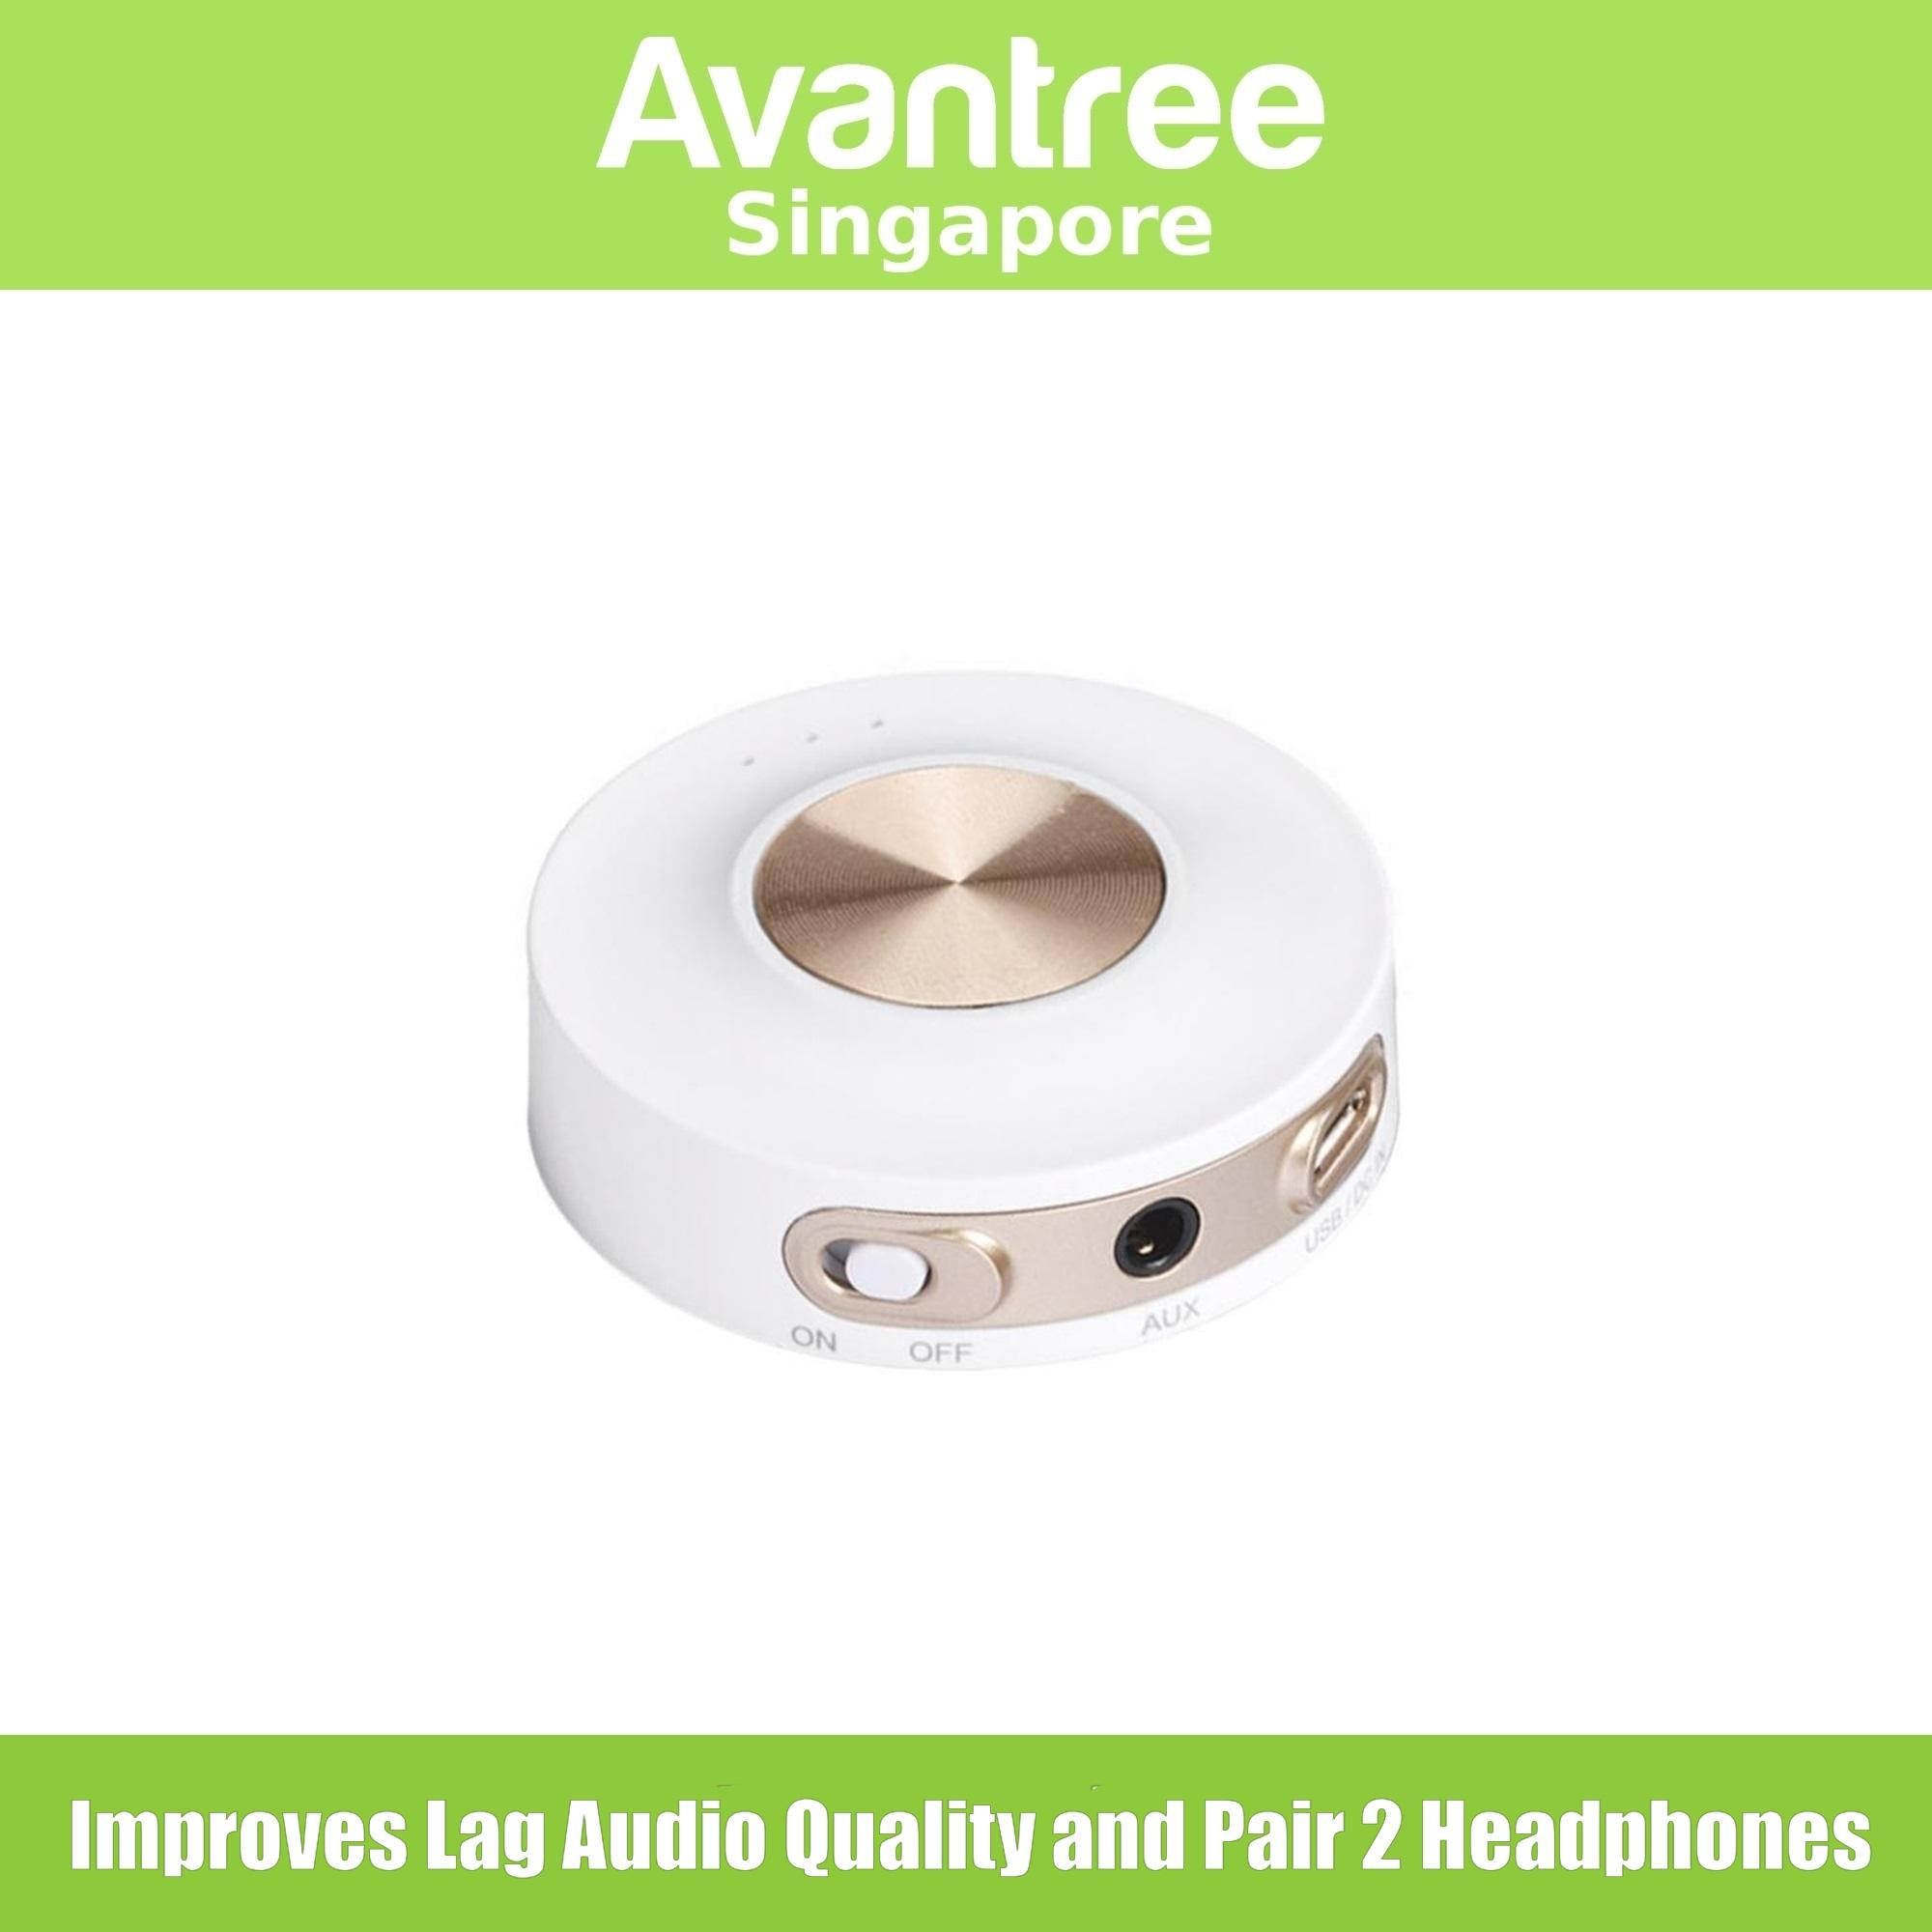 Avantree Wireless Audio Bluetooth Transmitter with aptX Low Latency (Dual  Link) and Built-in Battery for Portable Use (Priva 2A)